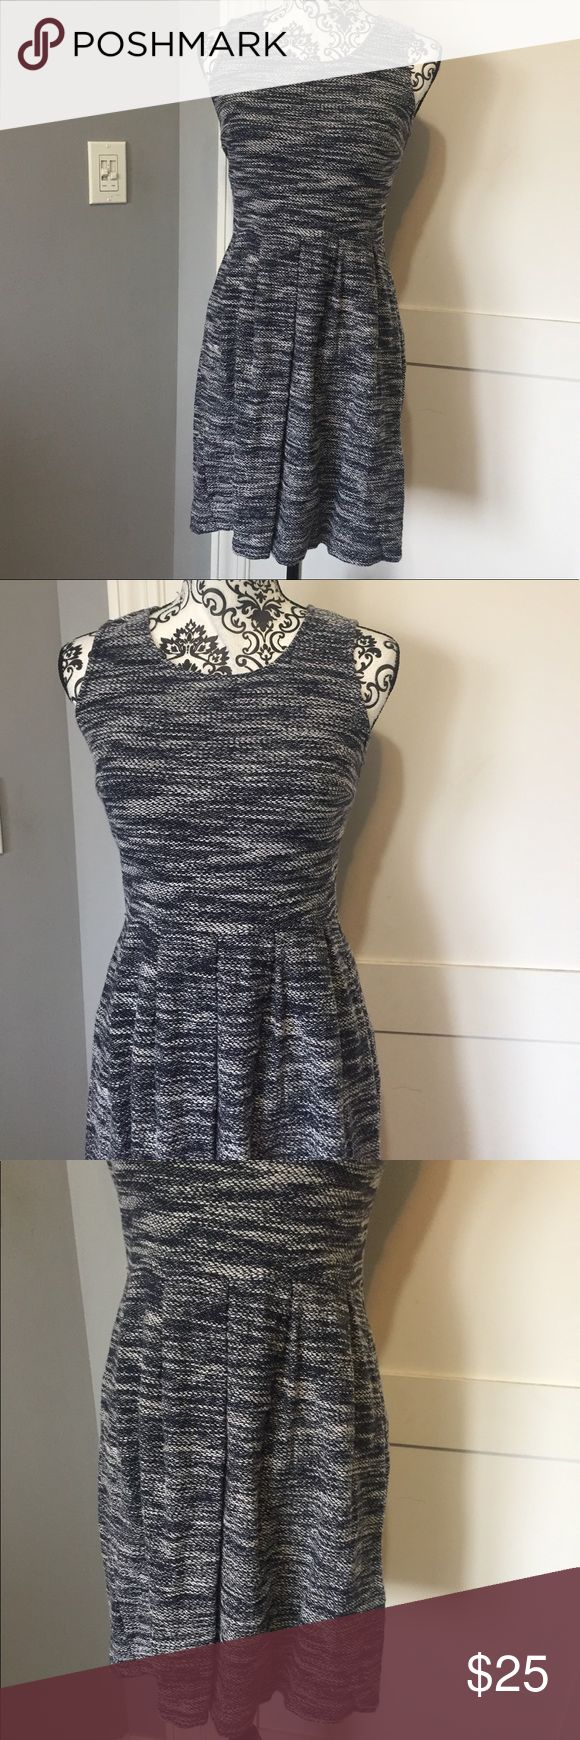 "Blue and white marled dress Marked blue and white dress from Ann Taylor loft. 19"" from waistband to hem.  Zips up back. Had some stretch to it.  Last photo is an example of fit, not actual dress LOFT Dresses Mini"